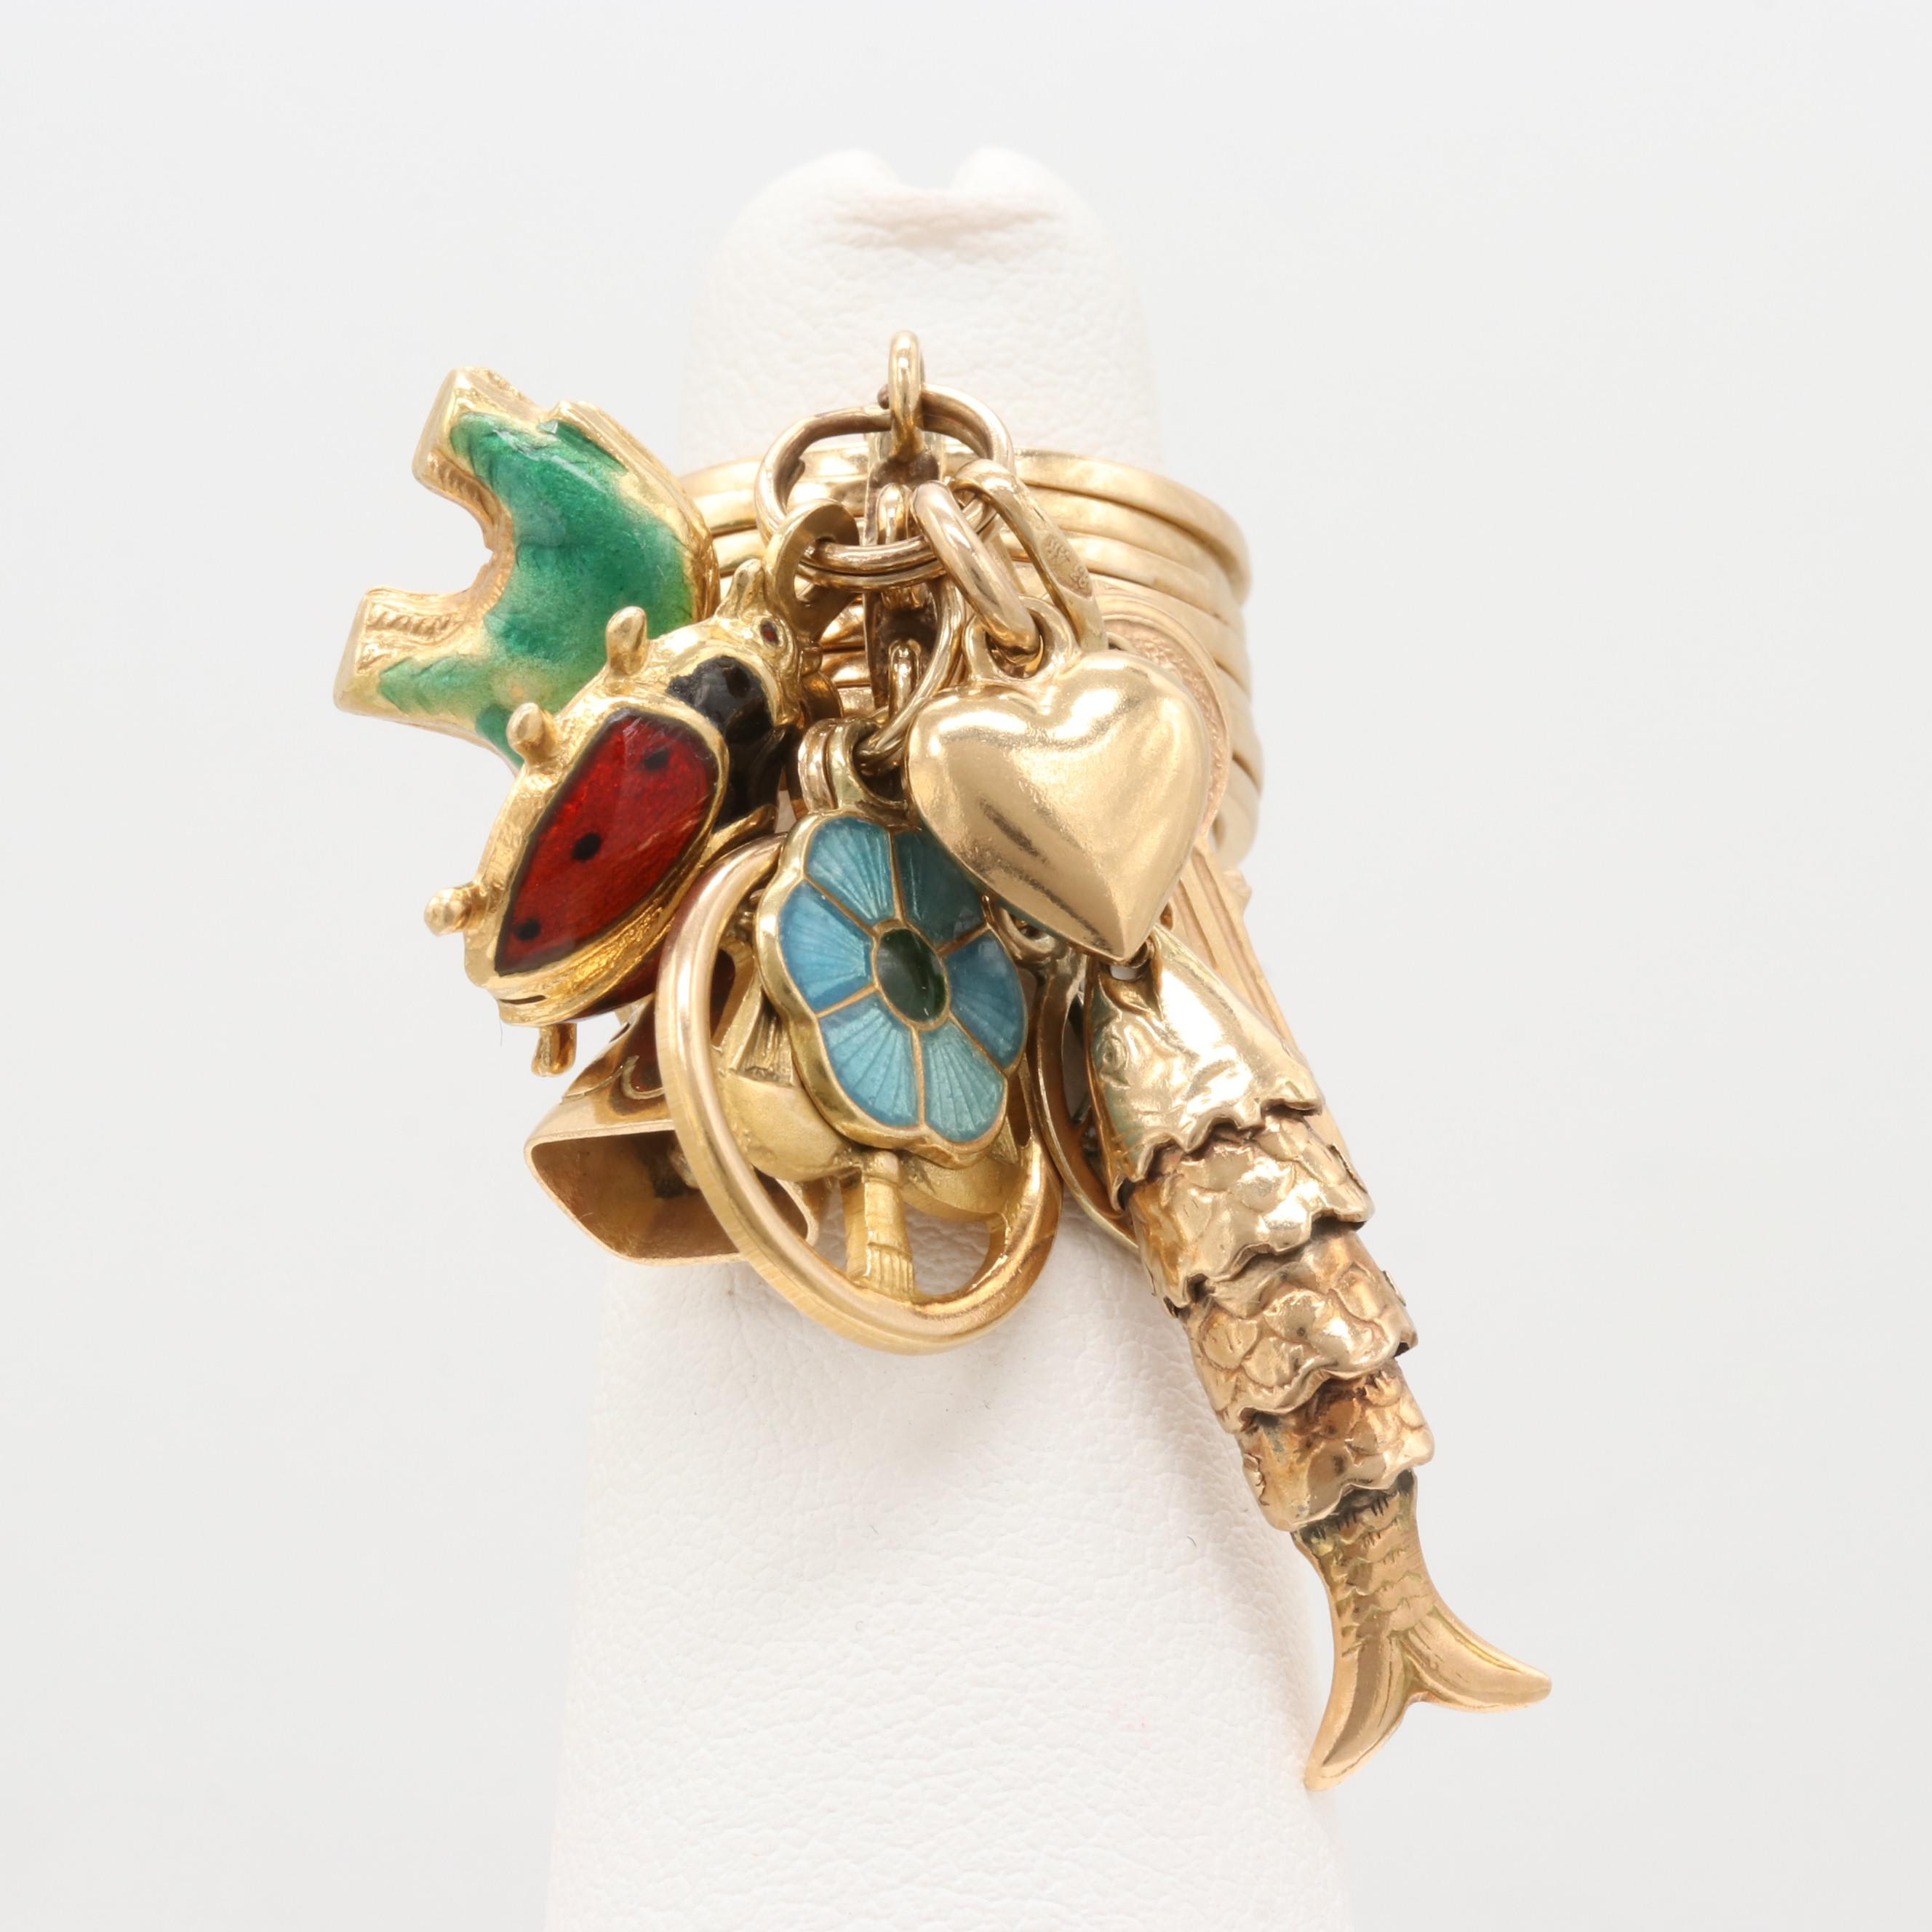 18K Yellow Gold Ring with 10K, 14K, and 18K Yellow Gold Enamel Charms